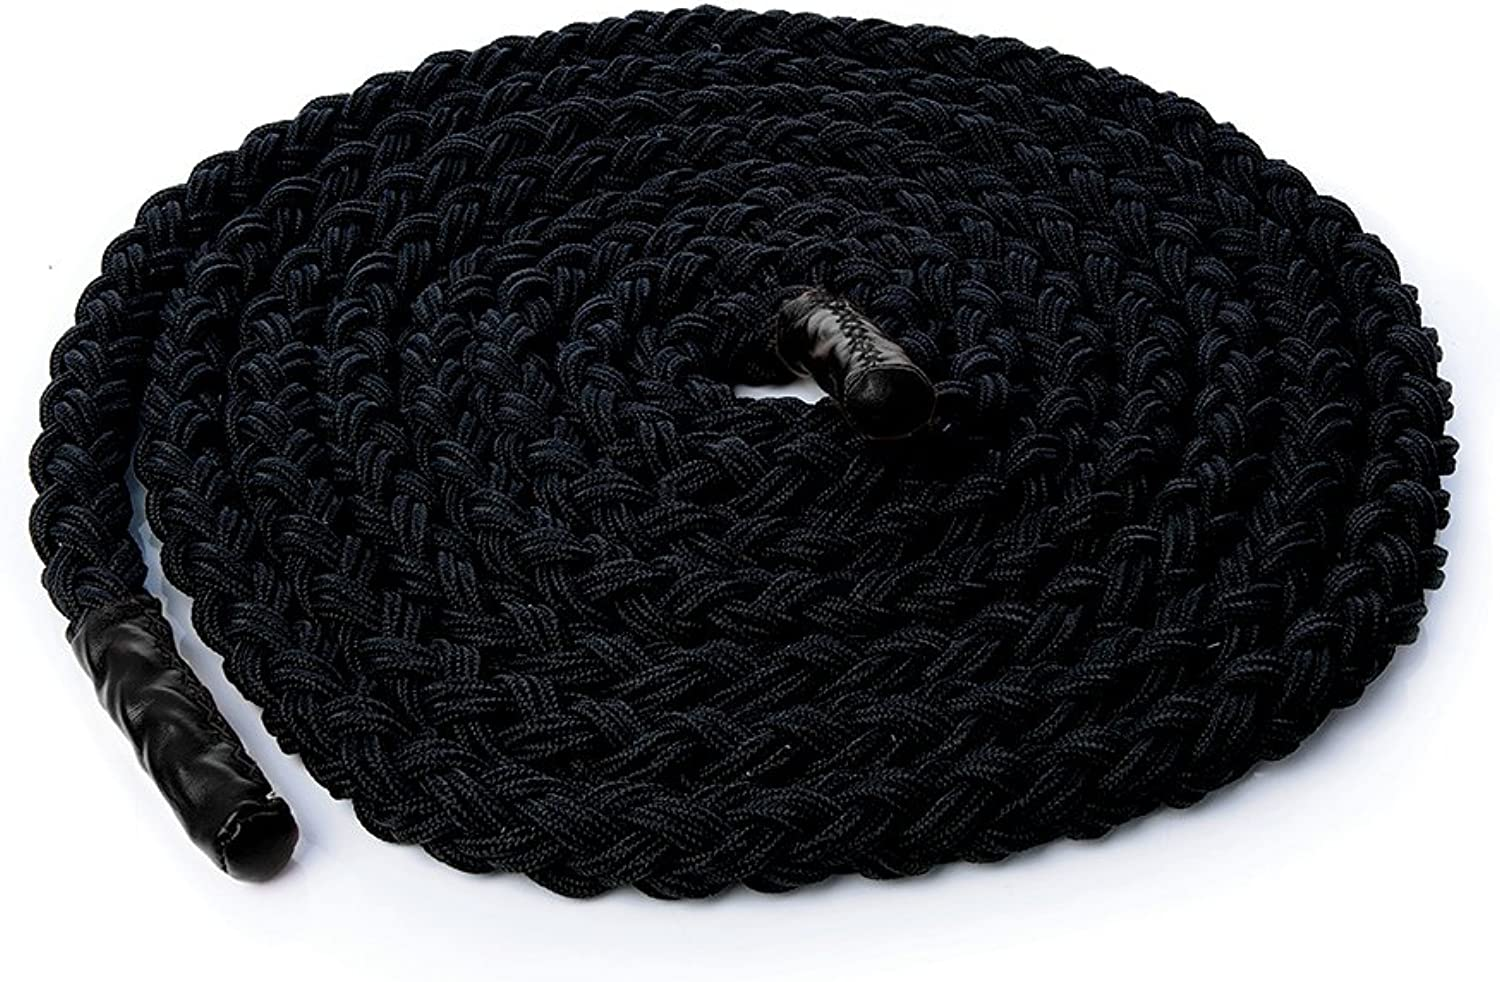 Escape Fitness USA 32mm Battle Rope for Strength and Conditioning Training BR3210